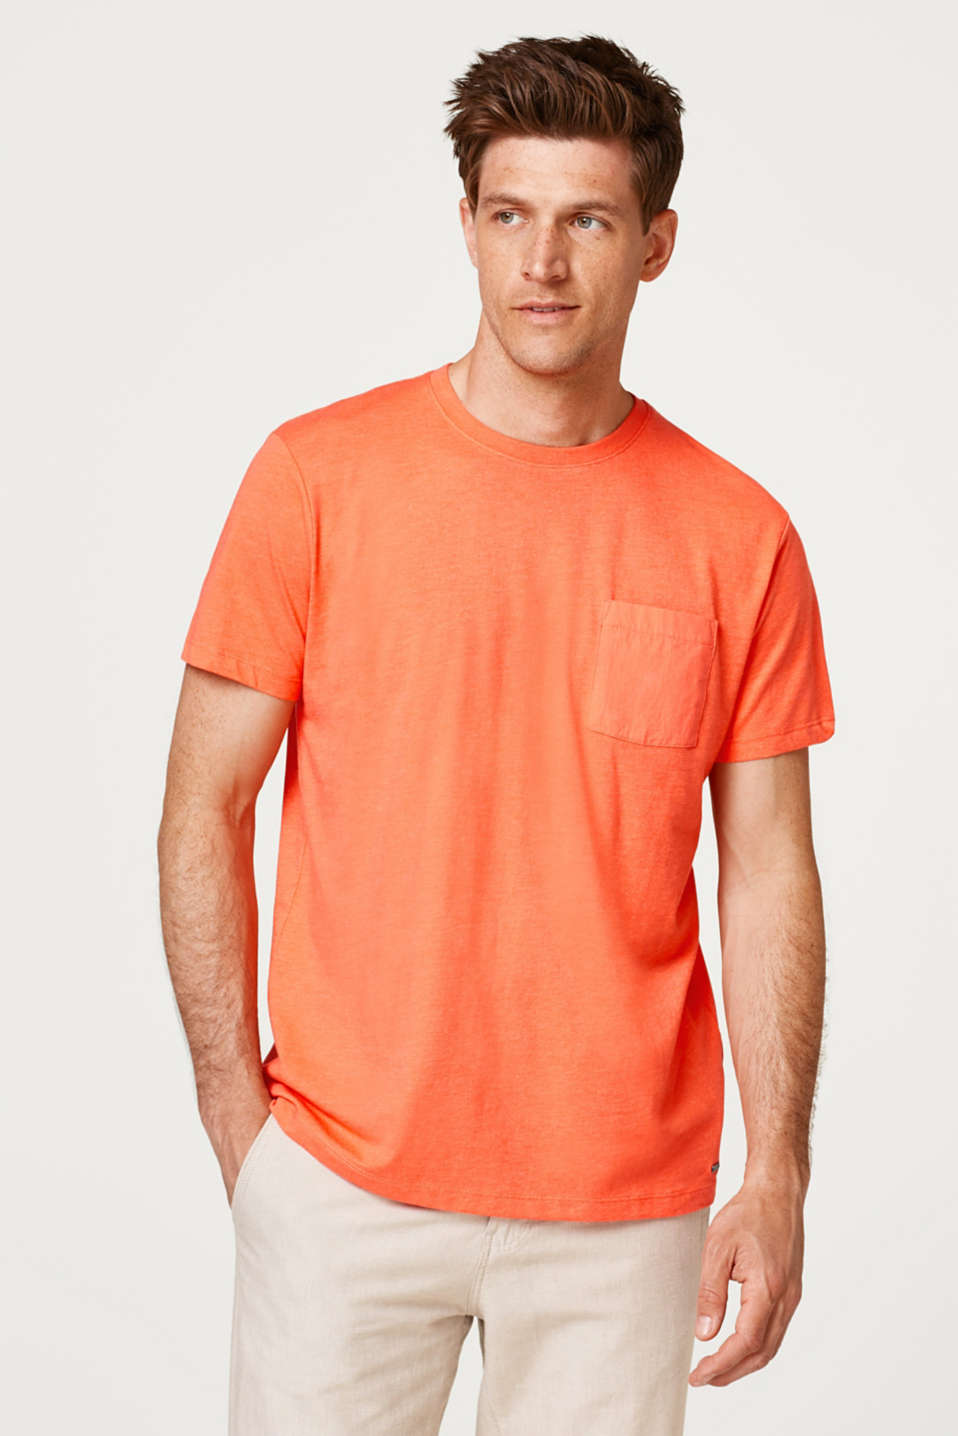 Esprit - Straight T-shirt in 100% cotton